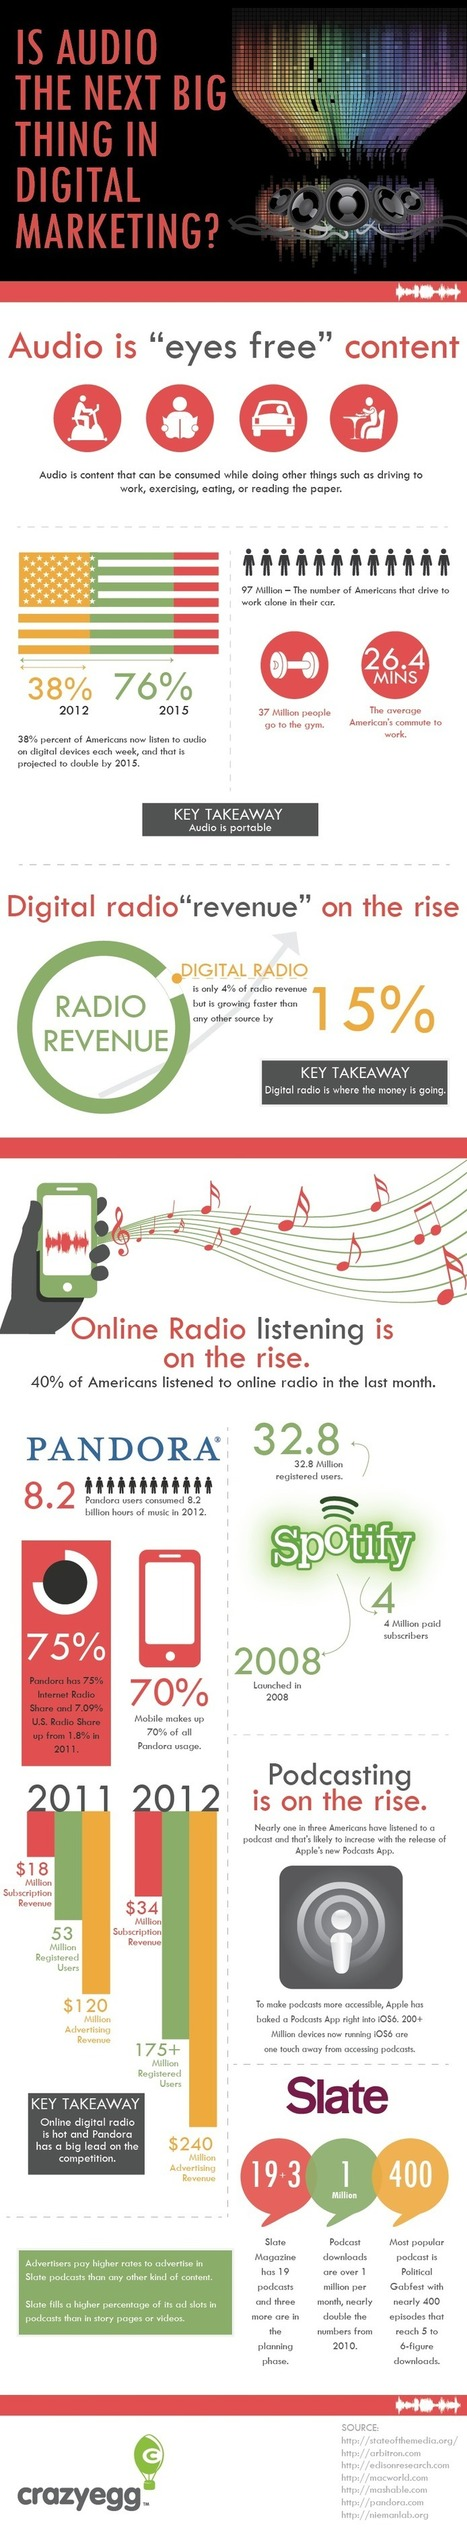 Is Audio The Next Big Thing In Digital Marketing? [Infographic] | Digital-News on Scoop.it today | Scoop.it